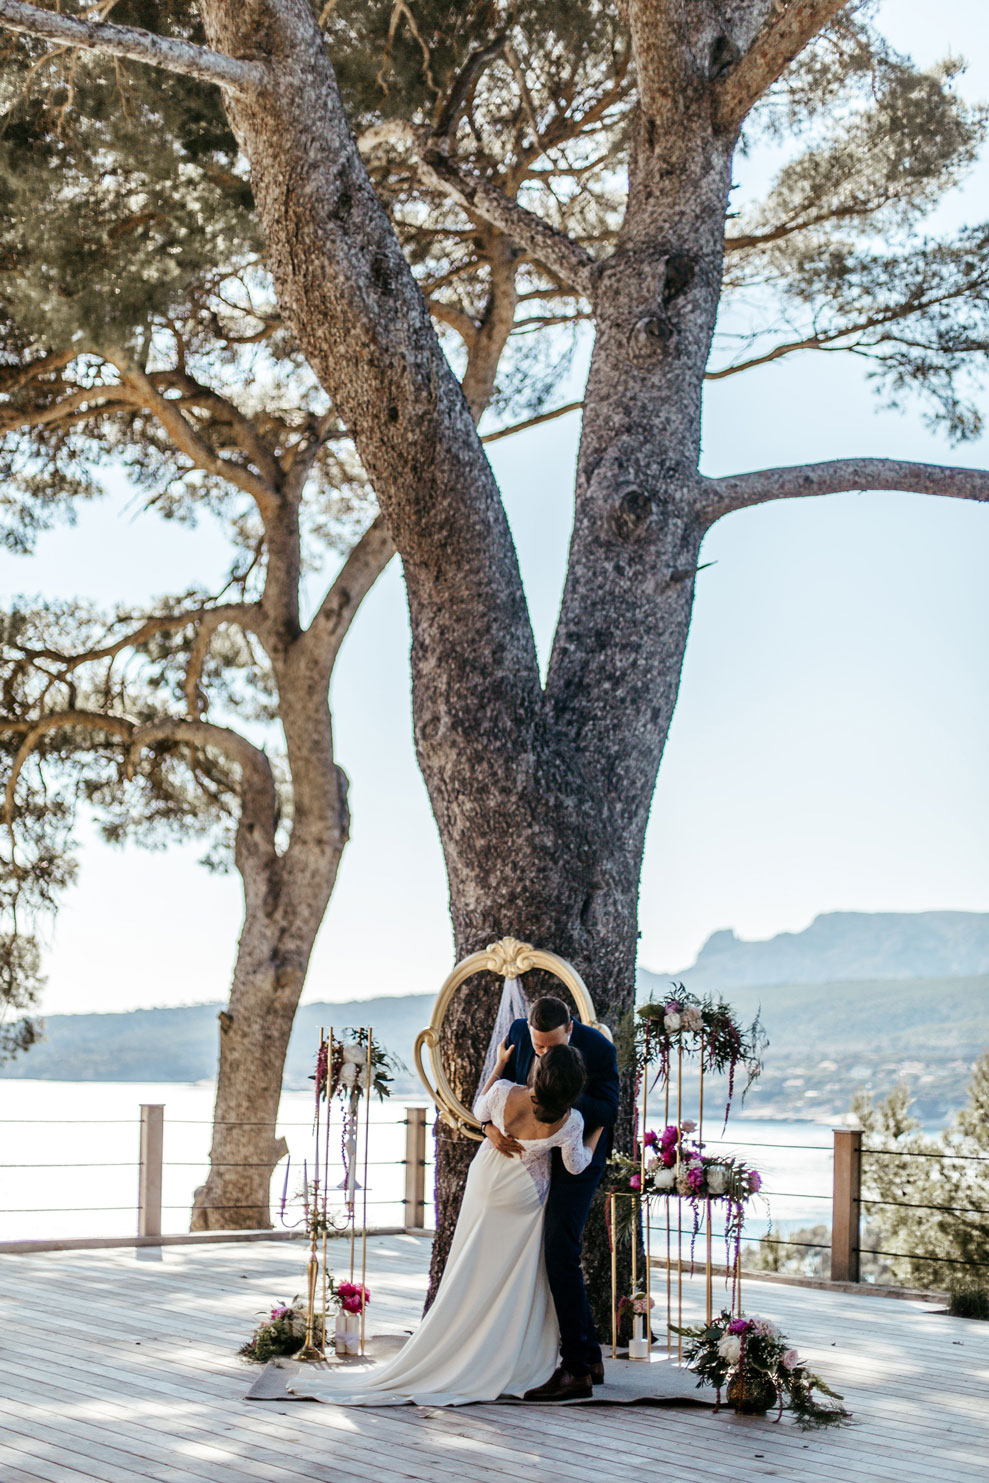 Mariage-Domaine-de-Canaille-Wedding-Planner-Cassis- 38